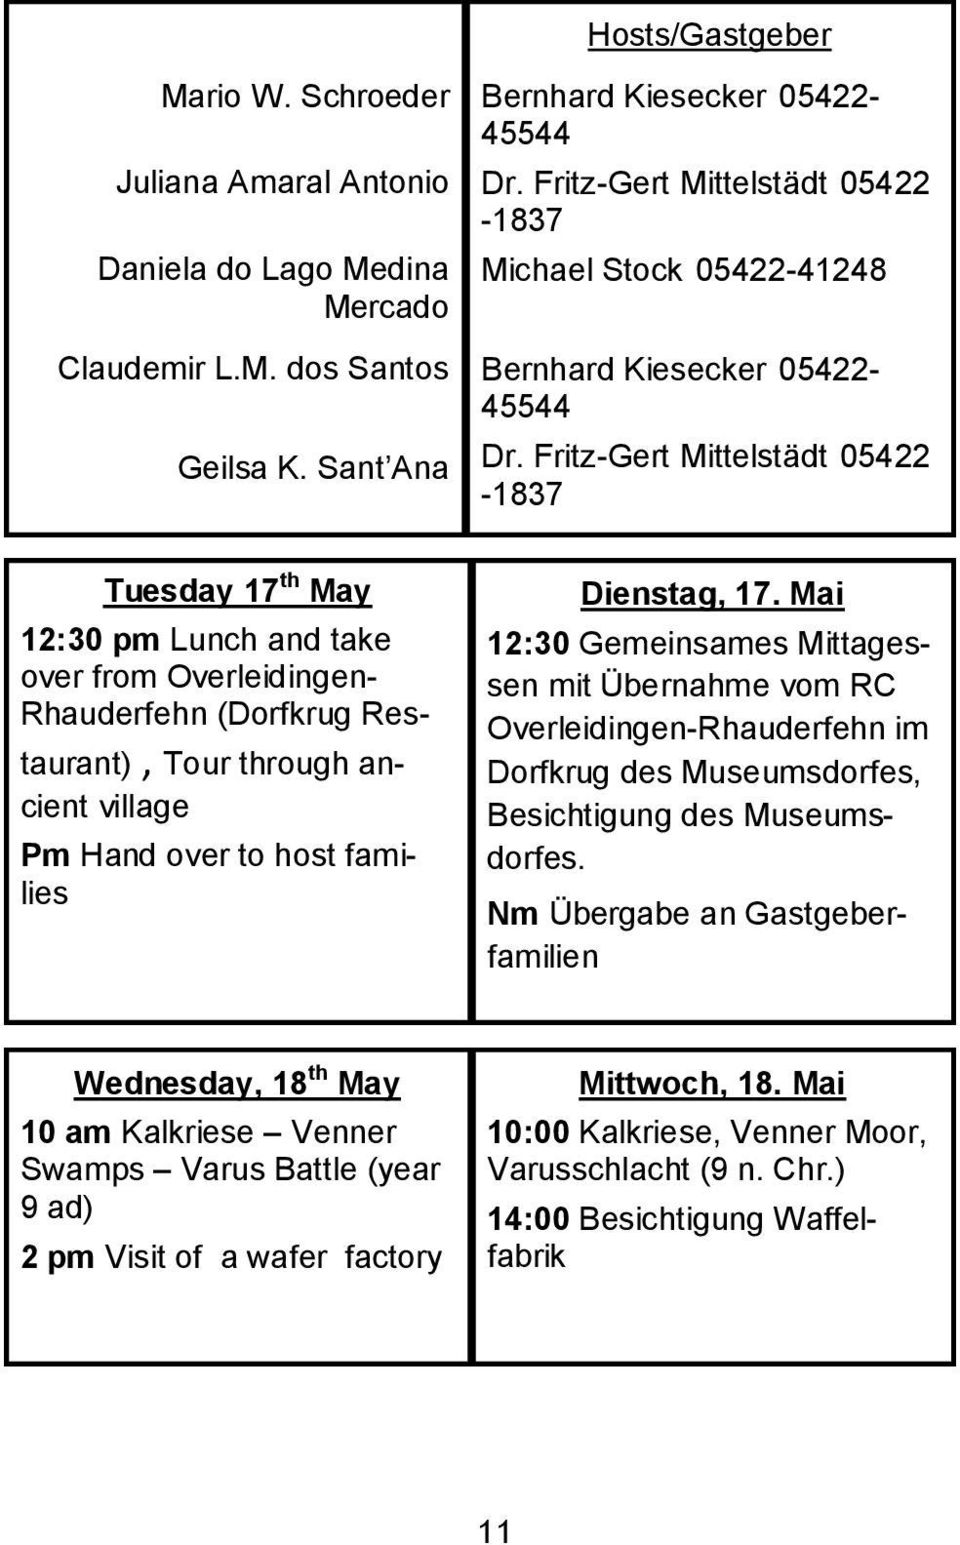 Fritz-Gert Mittelstädt 05422-1837 Tuesday 17 th May 12:30 pm Lunch and take over from Overleidingen- Rhauderfehn (Dorfkrug Restaurant), Tour through ancient village Pm Hand over to host families